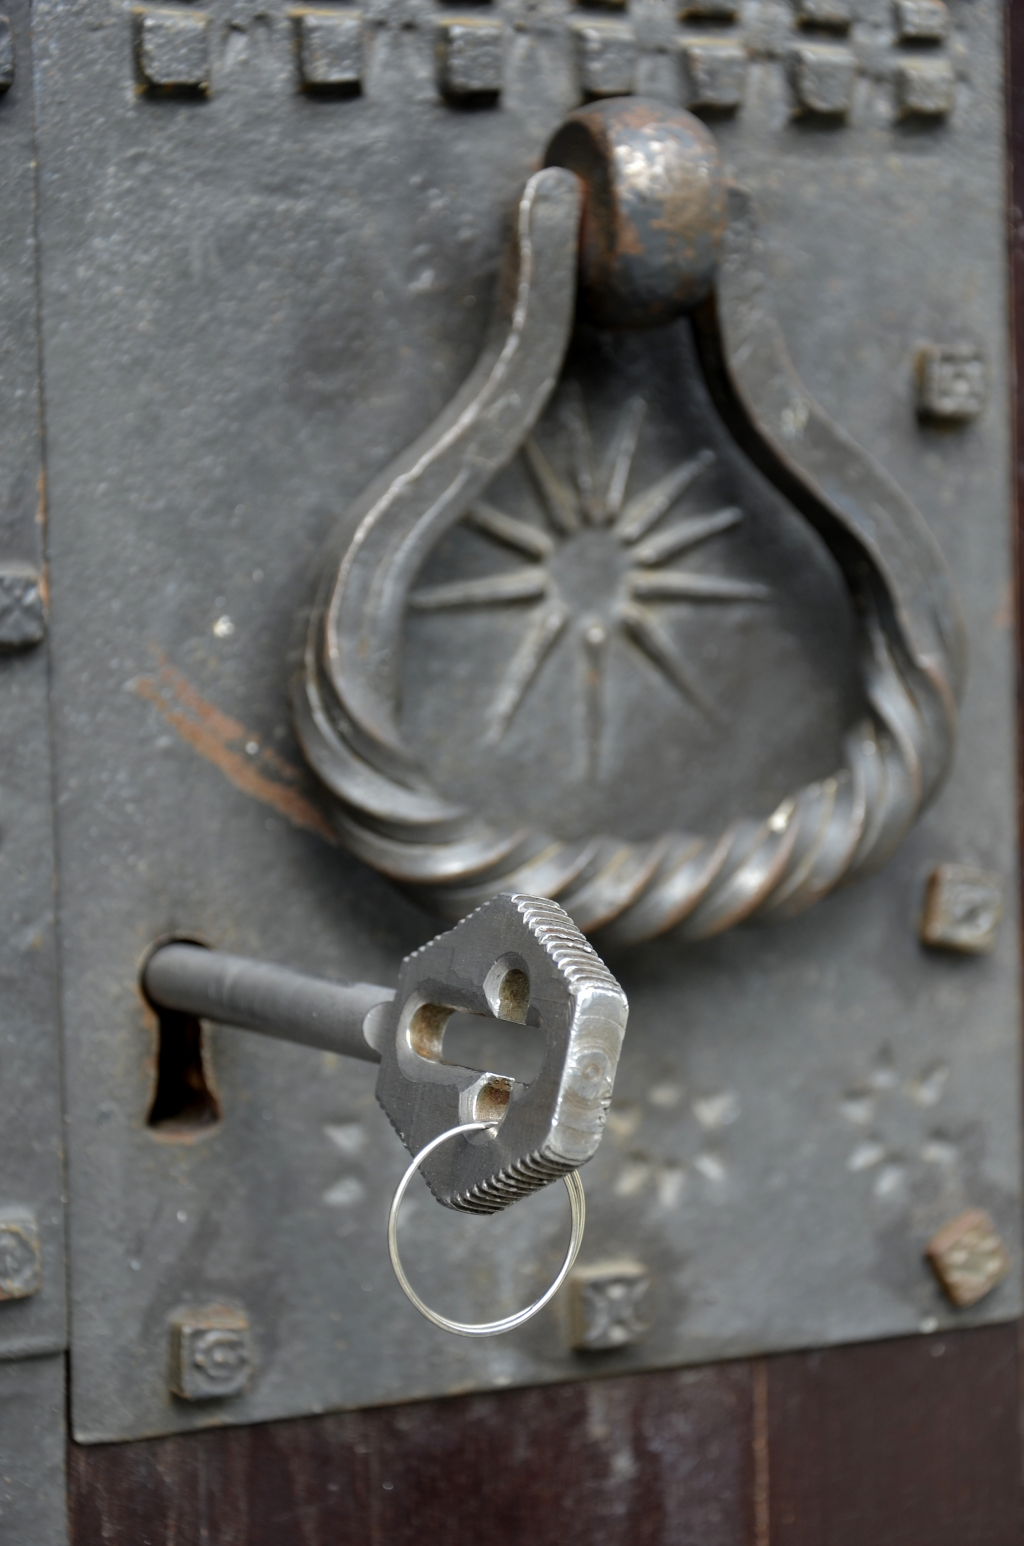 How Does A Skeleton Key Work